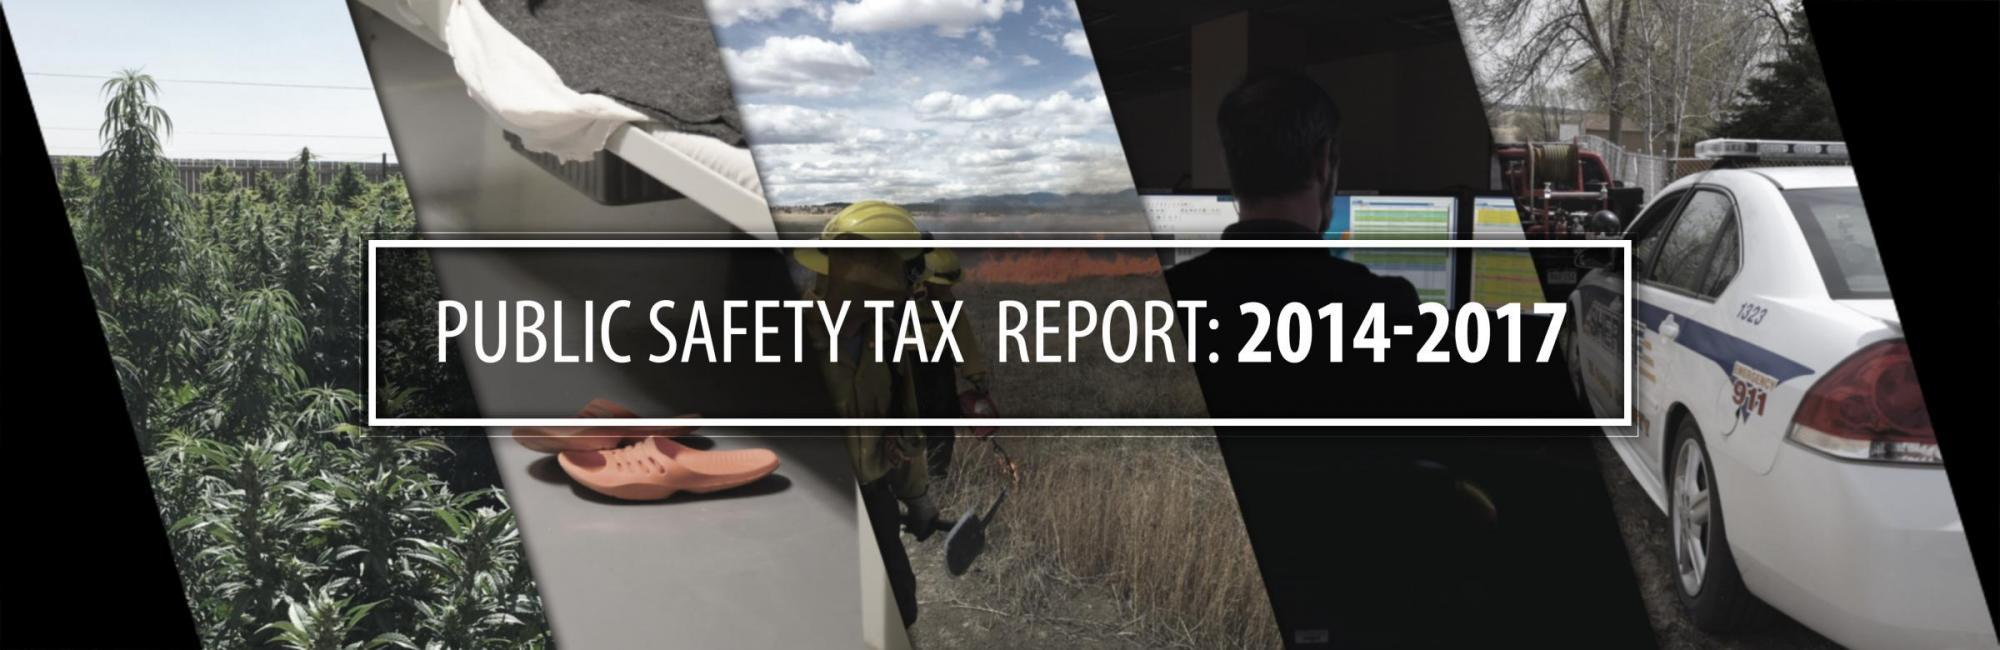 Public Safety Tax Report